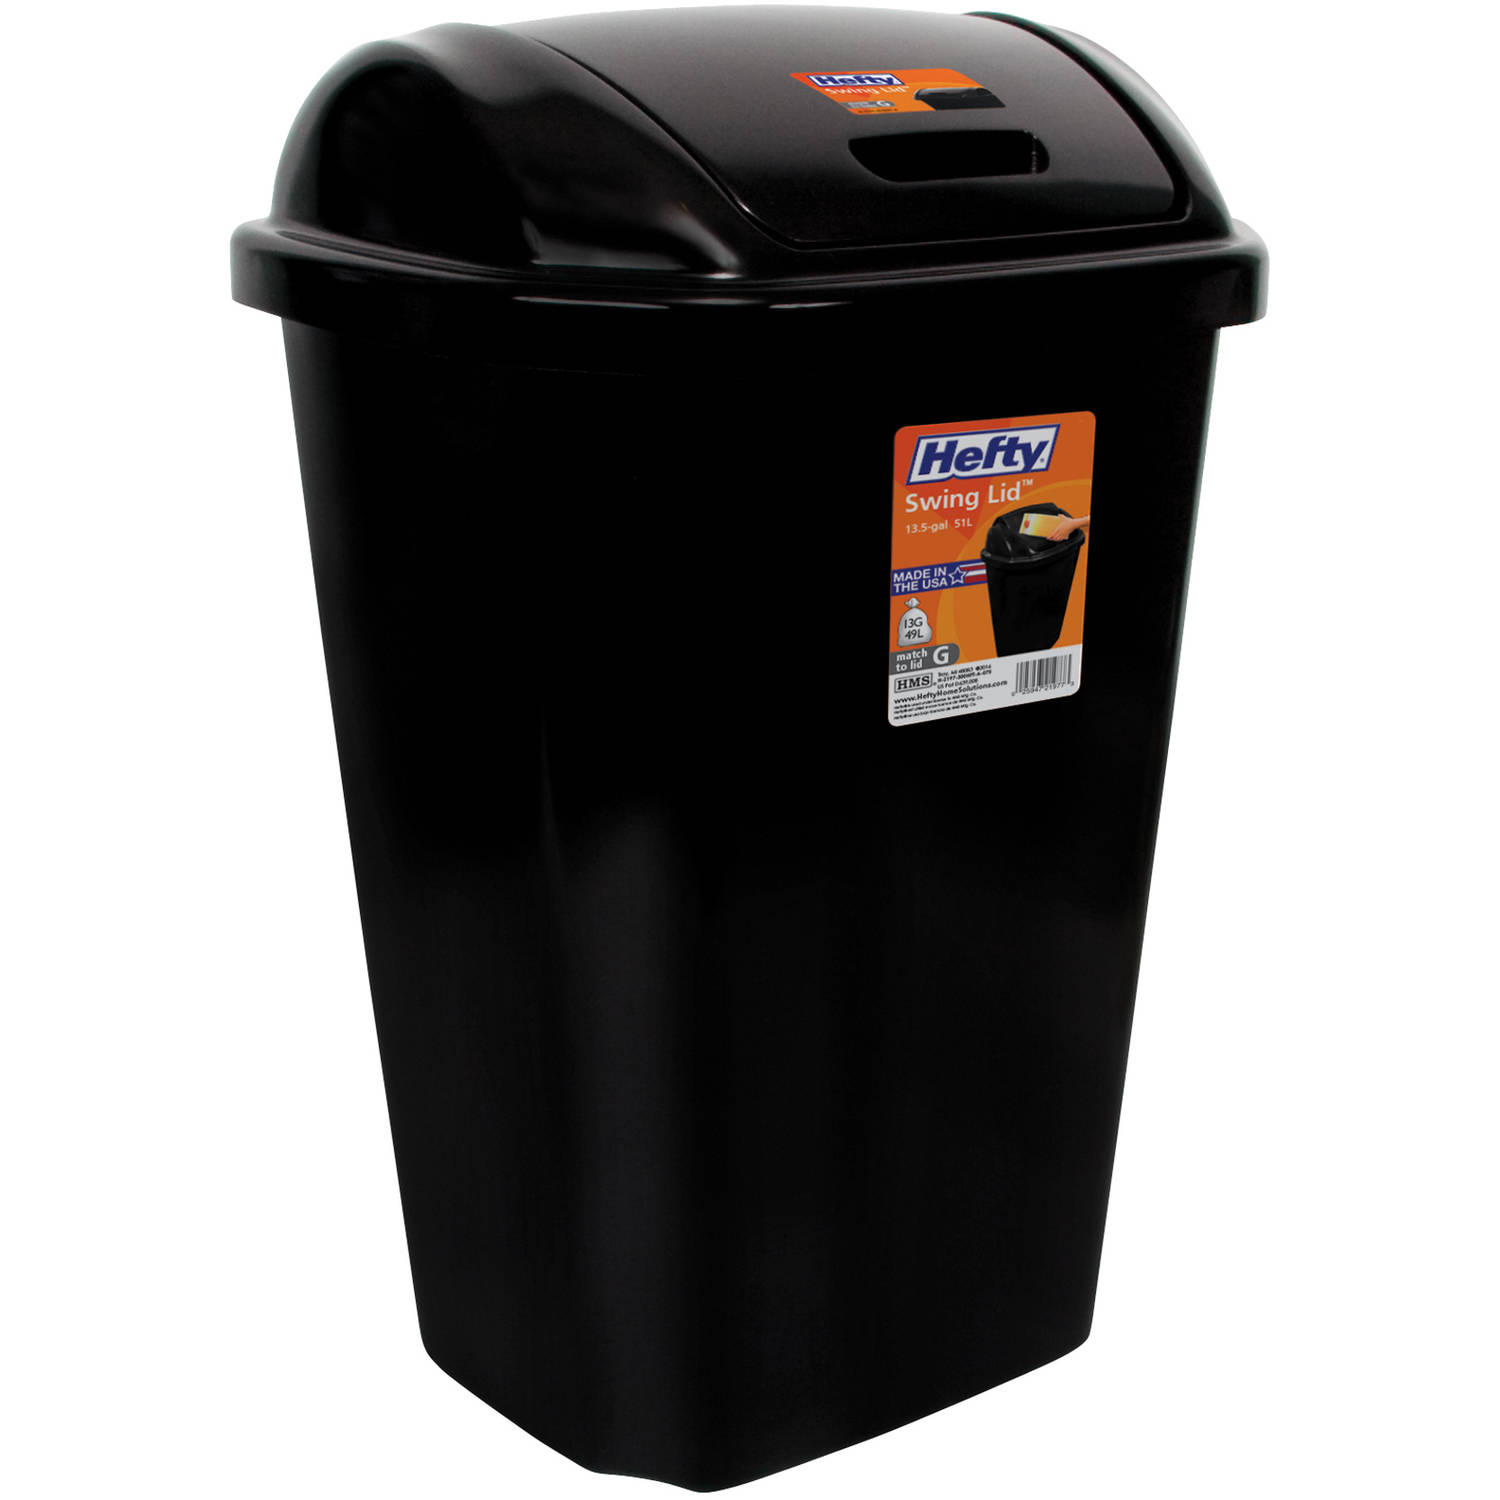 hefty swinglid 135gallon trash can black